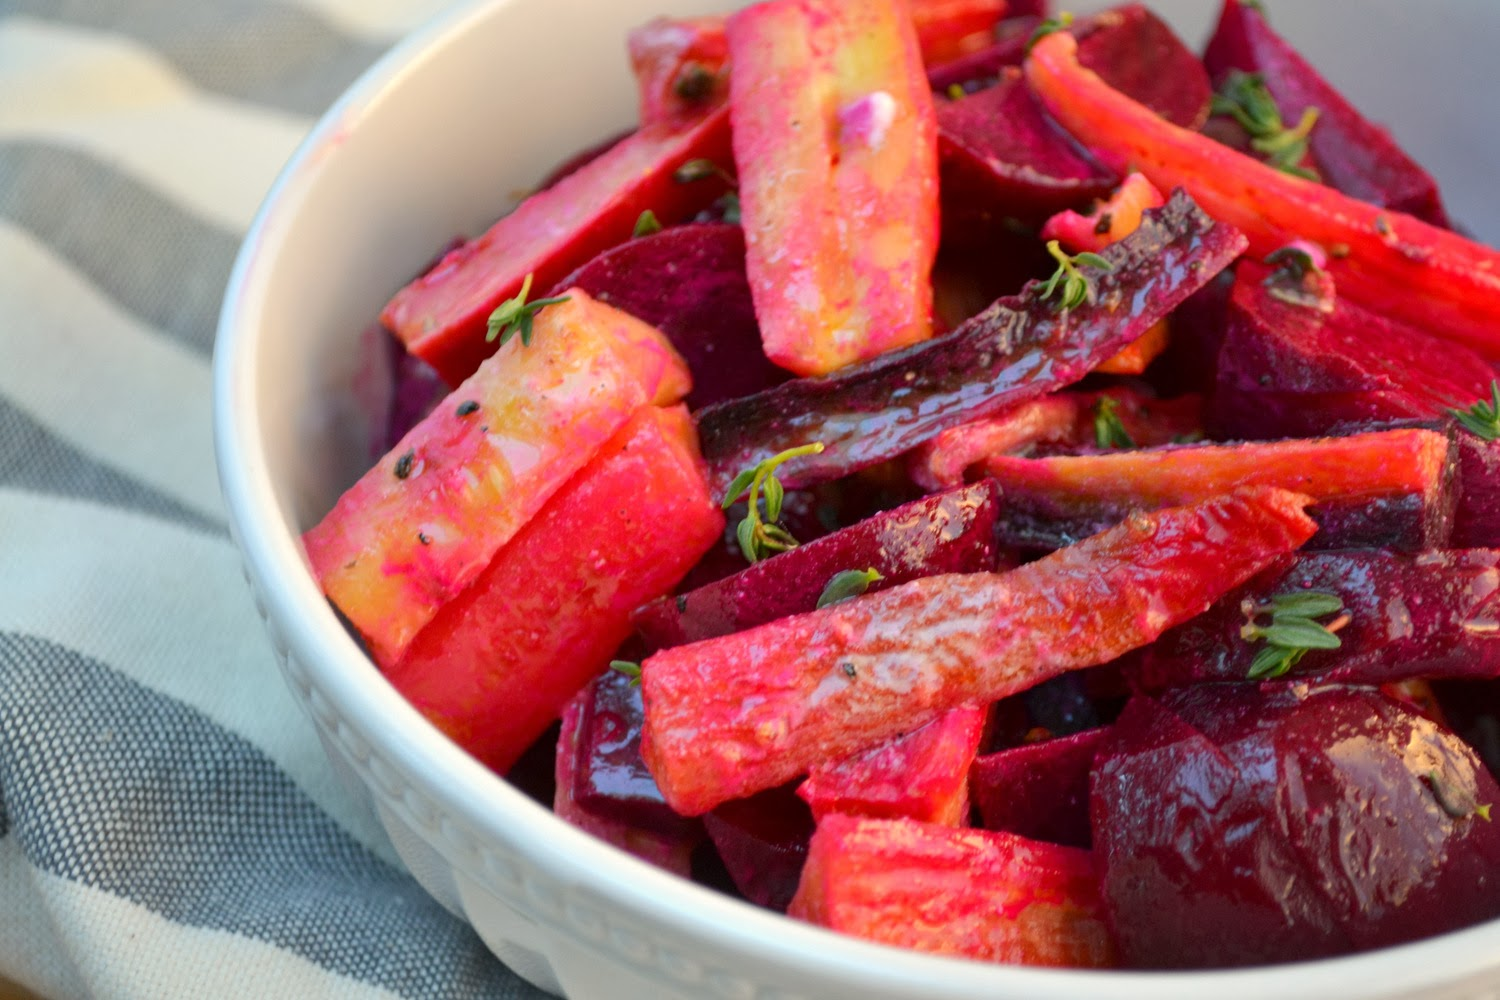 Roasted Beet and Heirloom Carrot Salad with Goat Cheese Vinaigrette